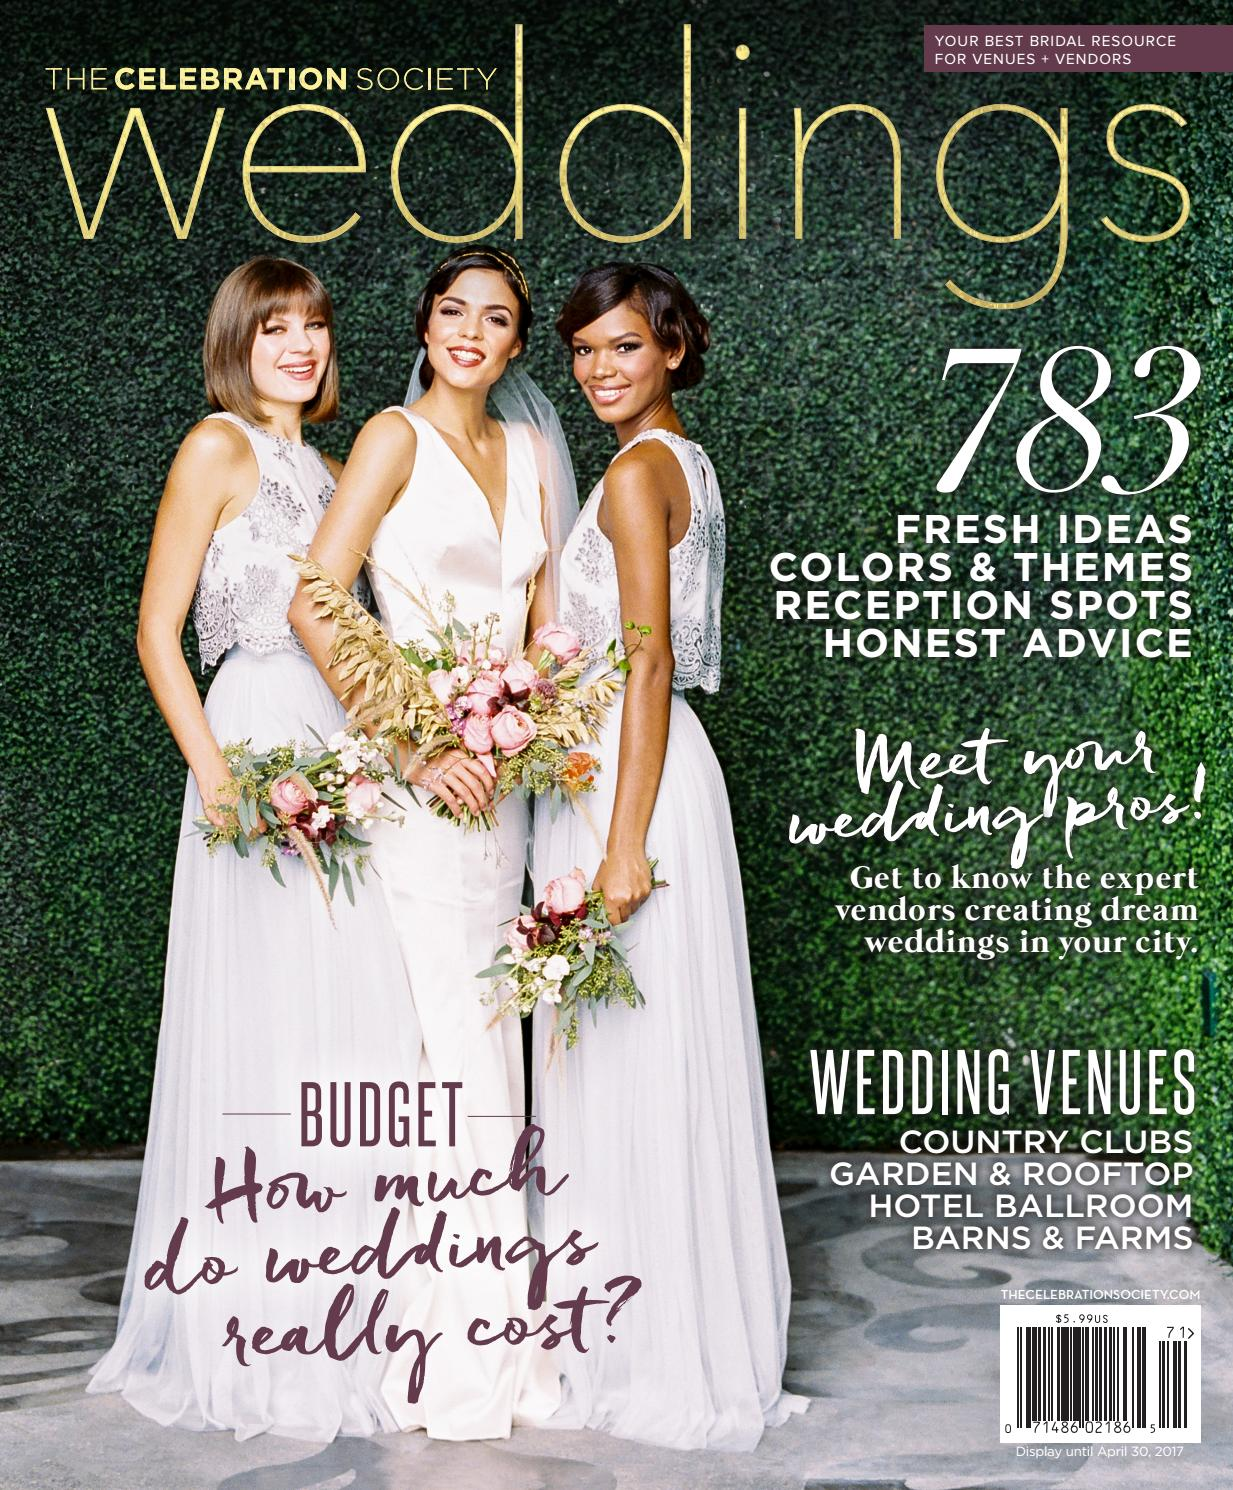 b37e208d57a The Celebration Society  Weddings 2017 by Occasions Media Group - issuu